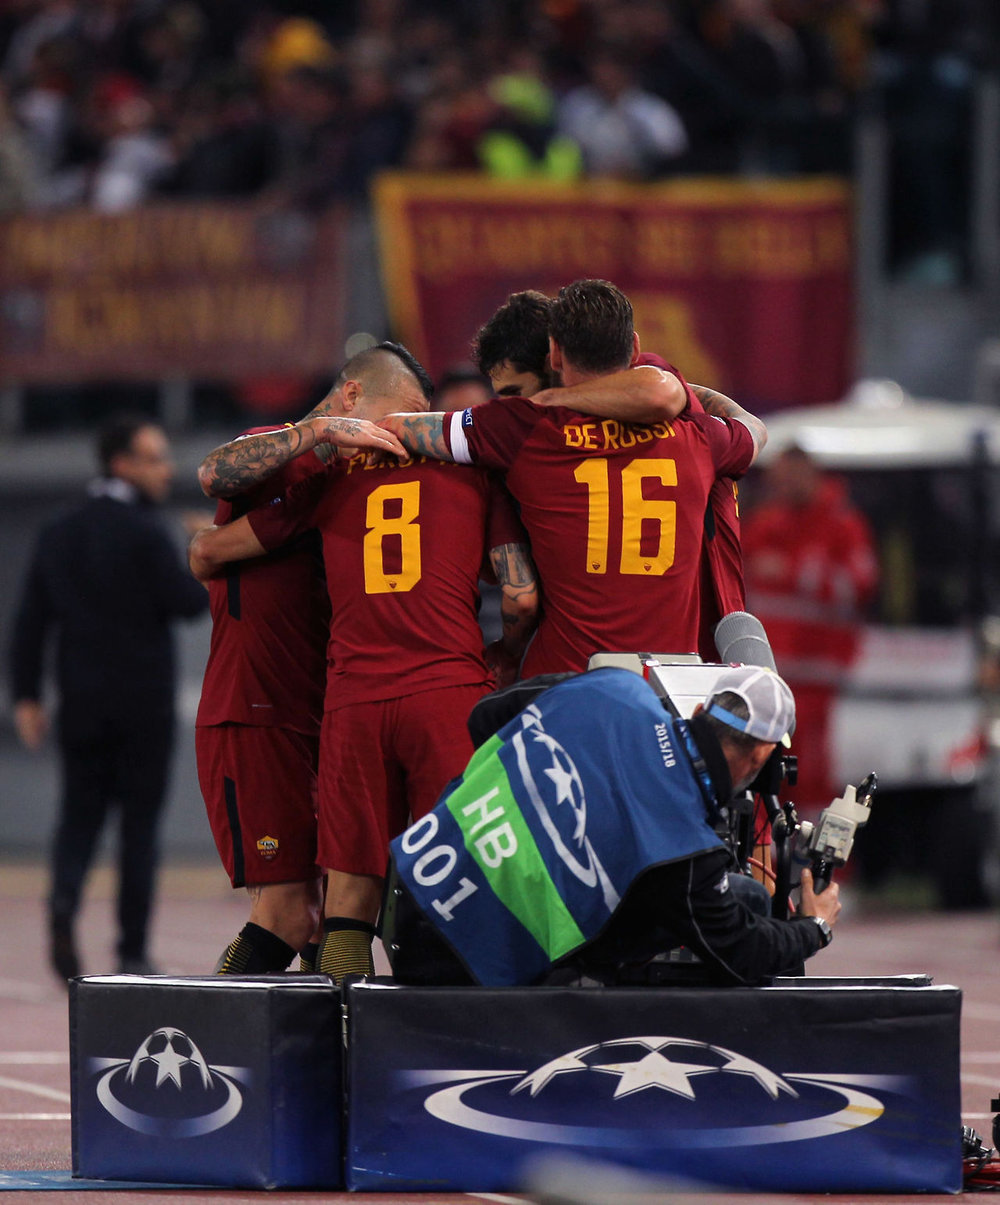 AS Roma players Nainggolan and De Rossi celebrate in UEFA Champions League